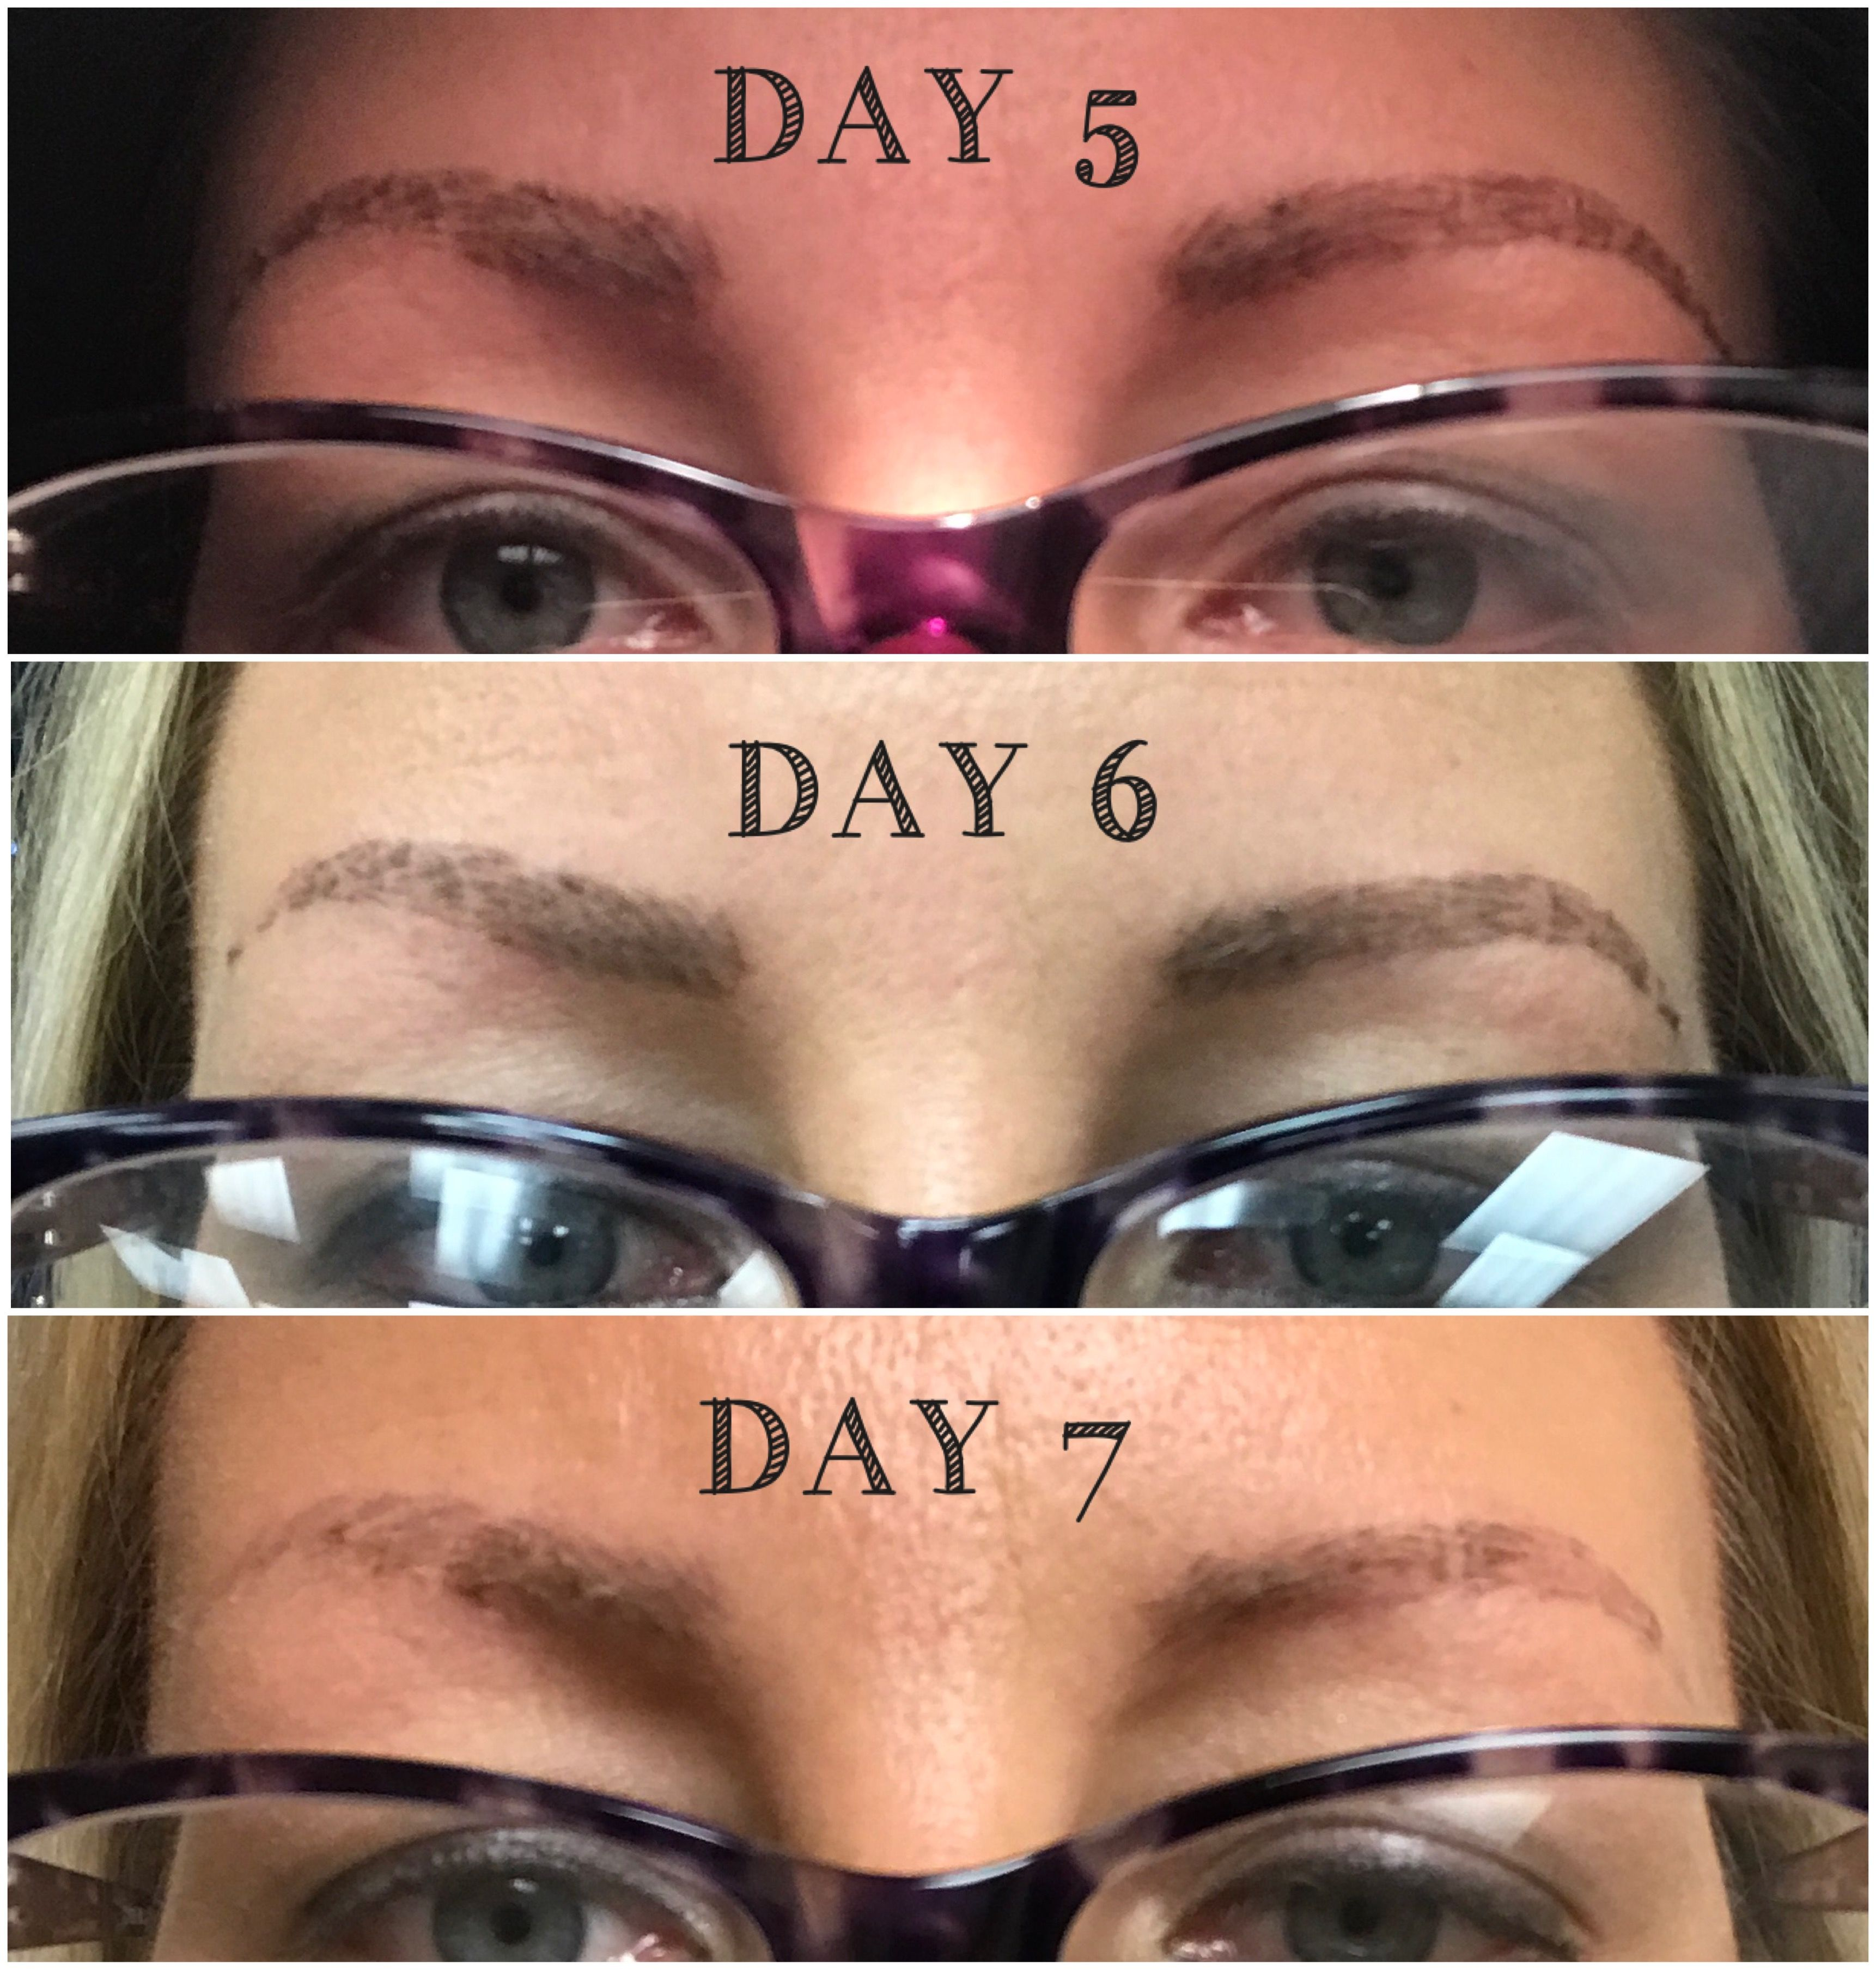 microblading healing day 5, day 6, and day 7 | Healing